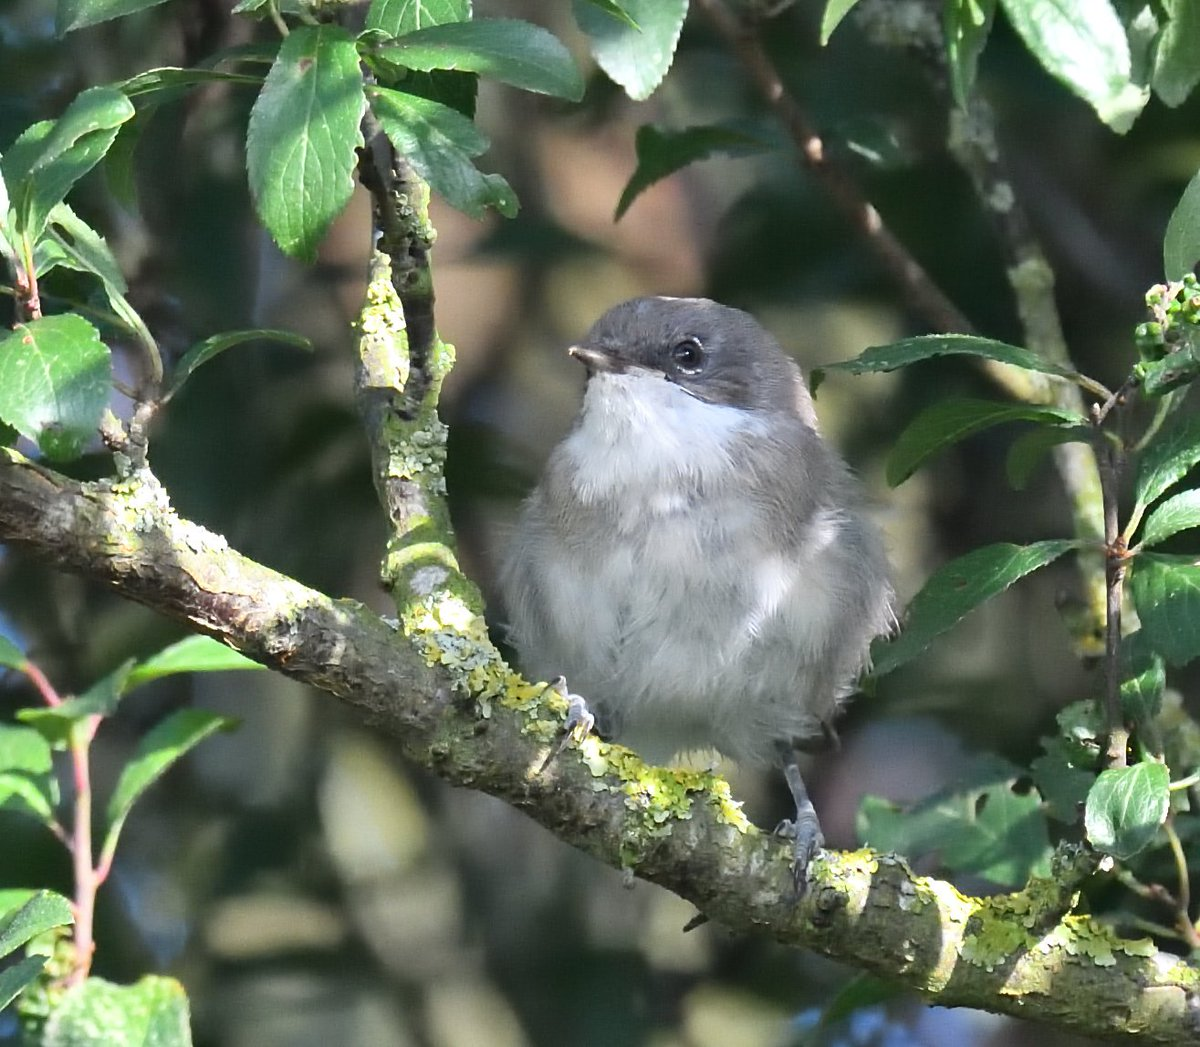 #LesserWhitethroat I believe ?? - seen in the hedgerow in the camping field from the Campervan window following 13 Long-tailed tits and Chiffchaffs @Birdfair #RutlandWater Two more seen out on the reserve today near Fieldfare hide with the Willow Warblers and Chiffchaffs <br>http://pic.twitter.com/FMFuClI43W